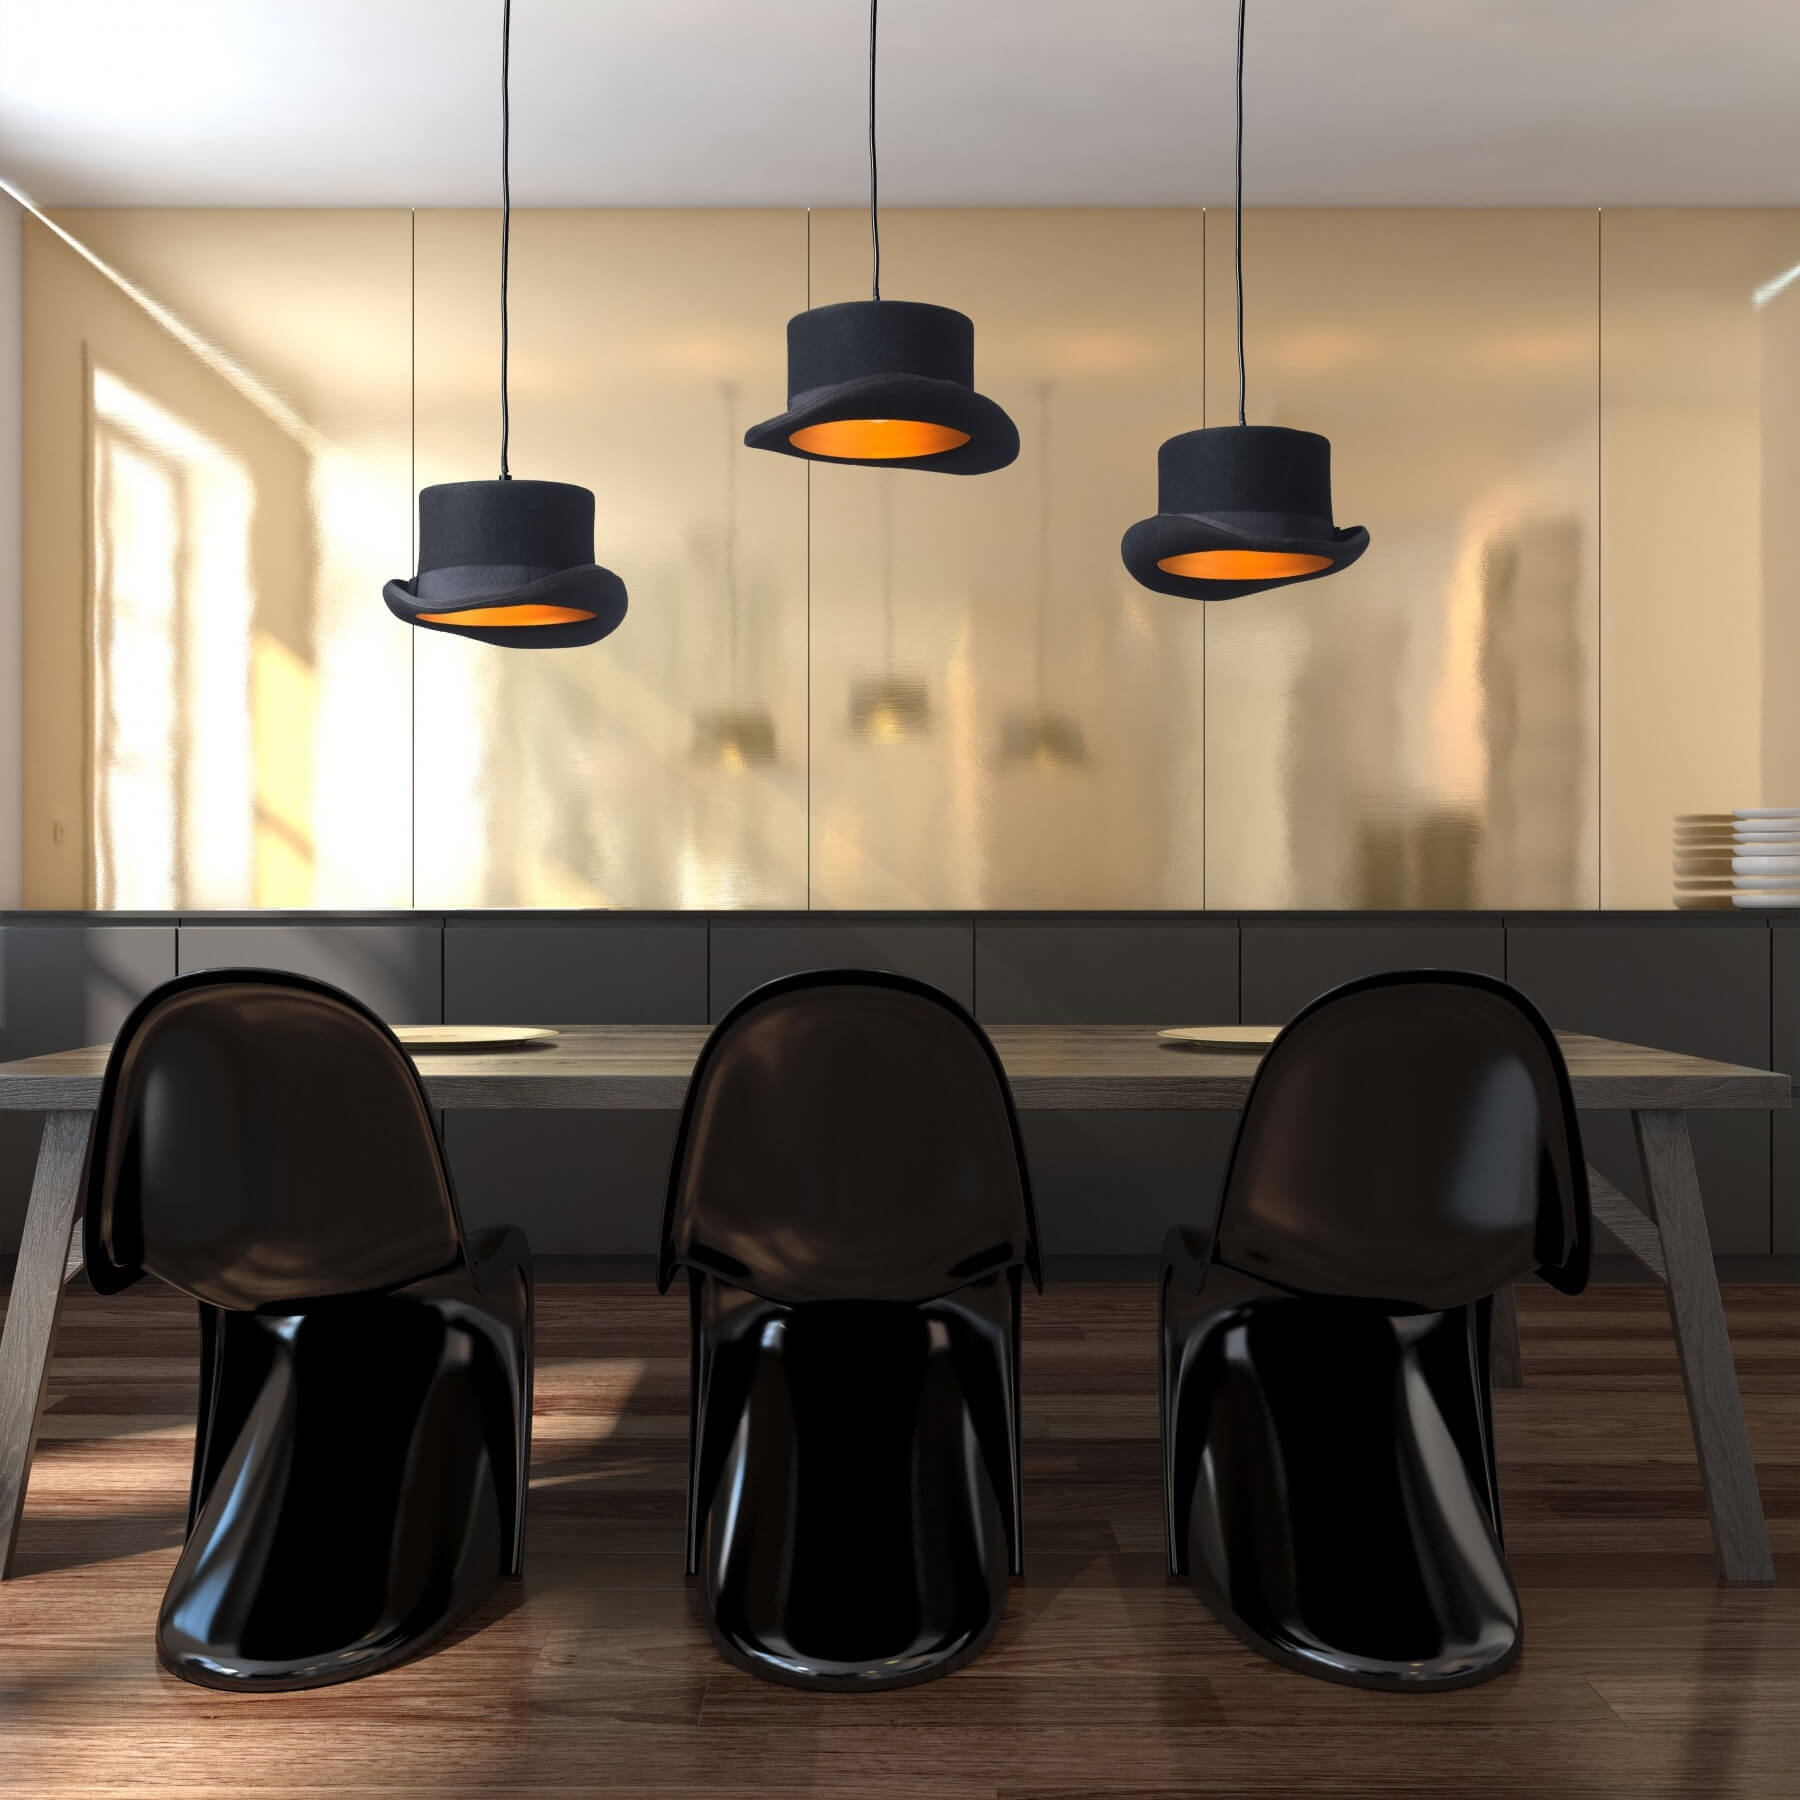 Black pendant light environmental view